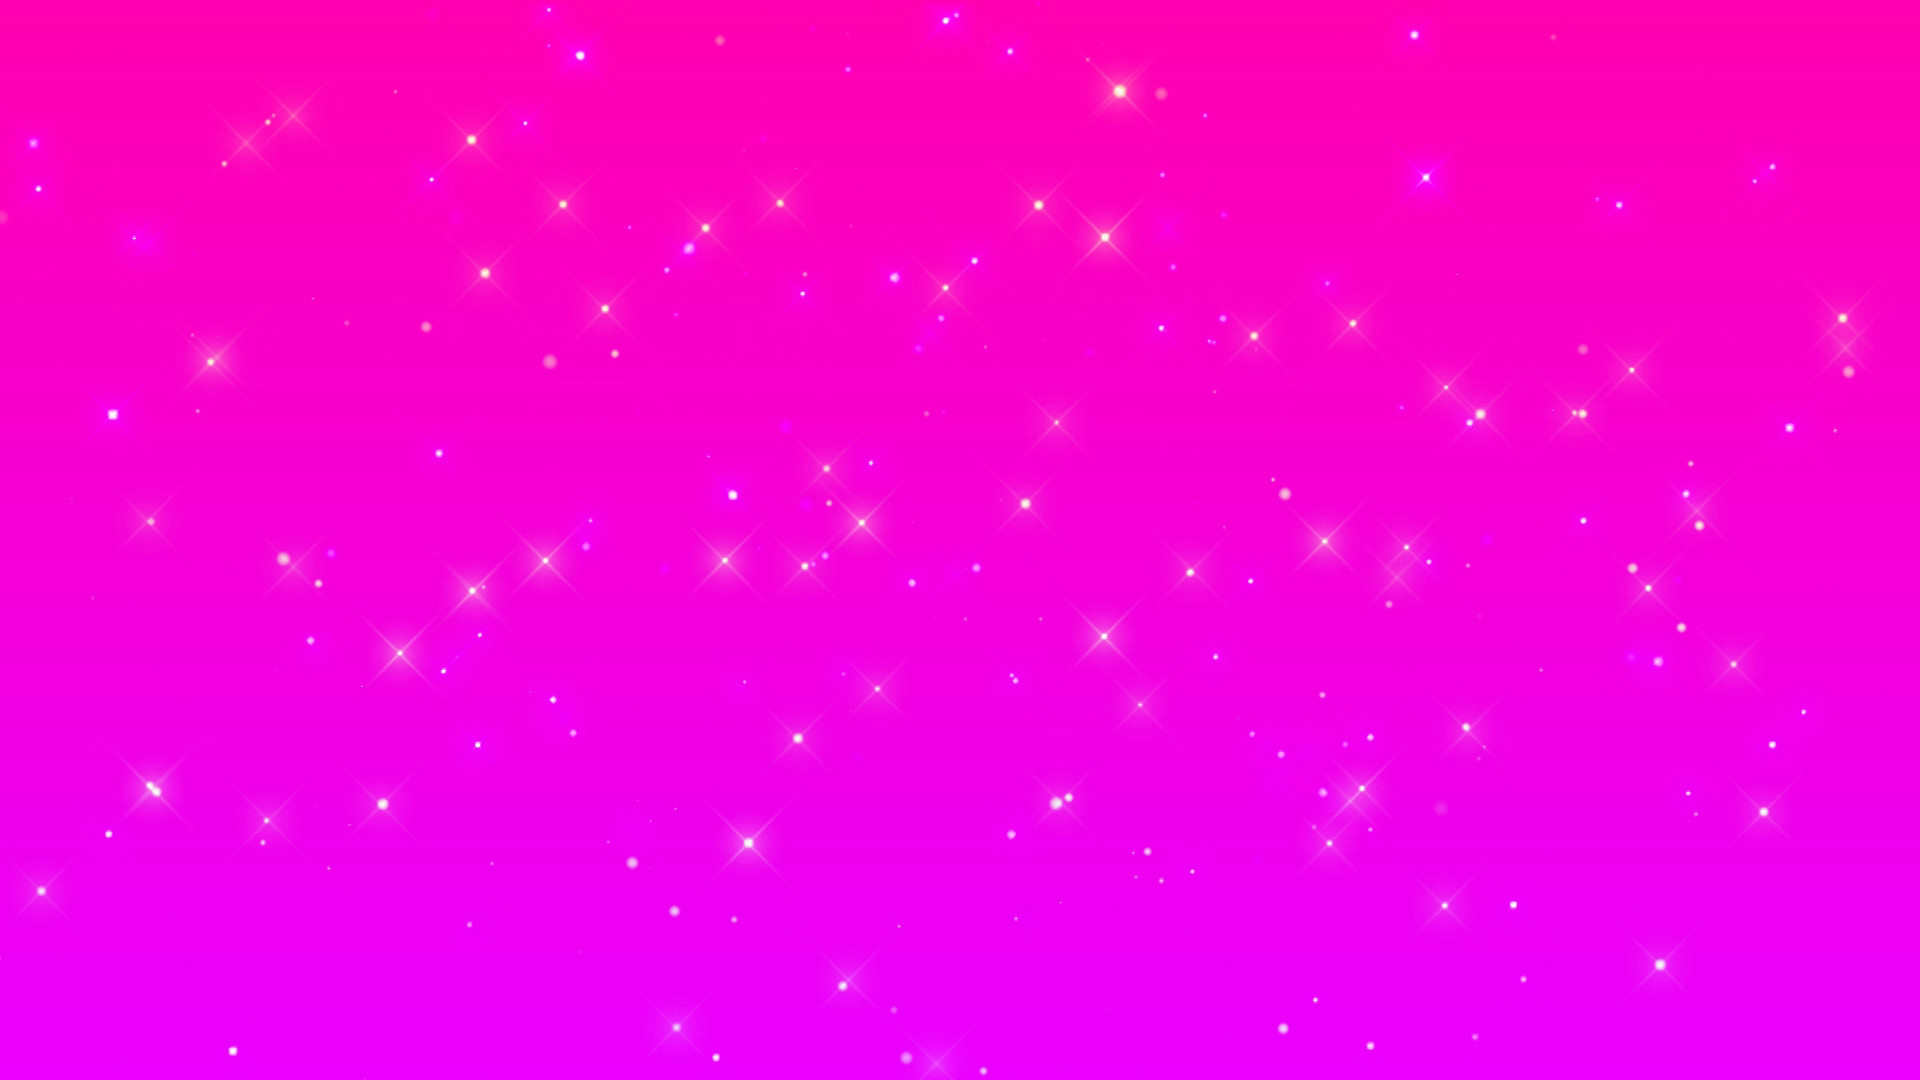 Bright Pink Backgrounds – Wallpaper Cave